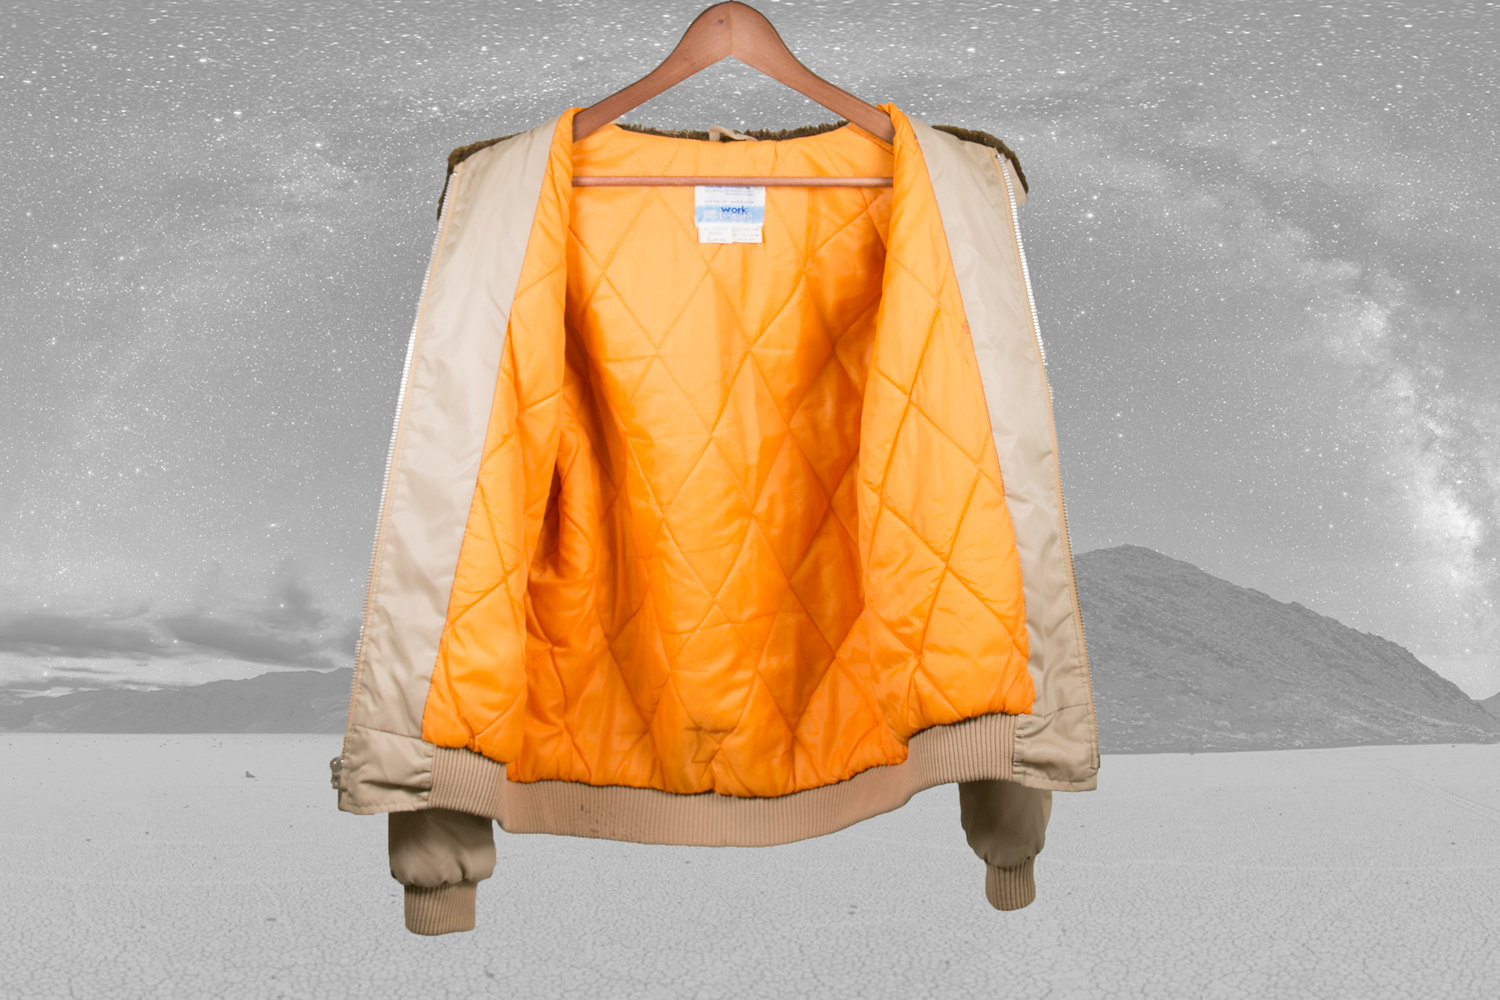 Rare Vintage 1970's Sears Quilt-lined Winter Jacket w/ Fur Collar (faux) & Orange Lining - Men's Large - Indie, Hipster, Retro, Avant Garde